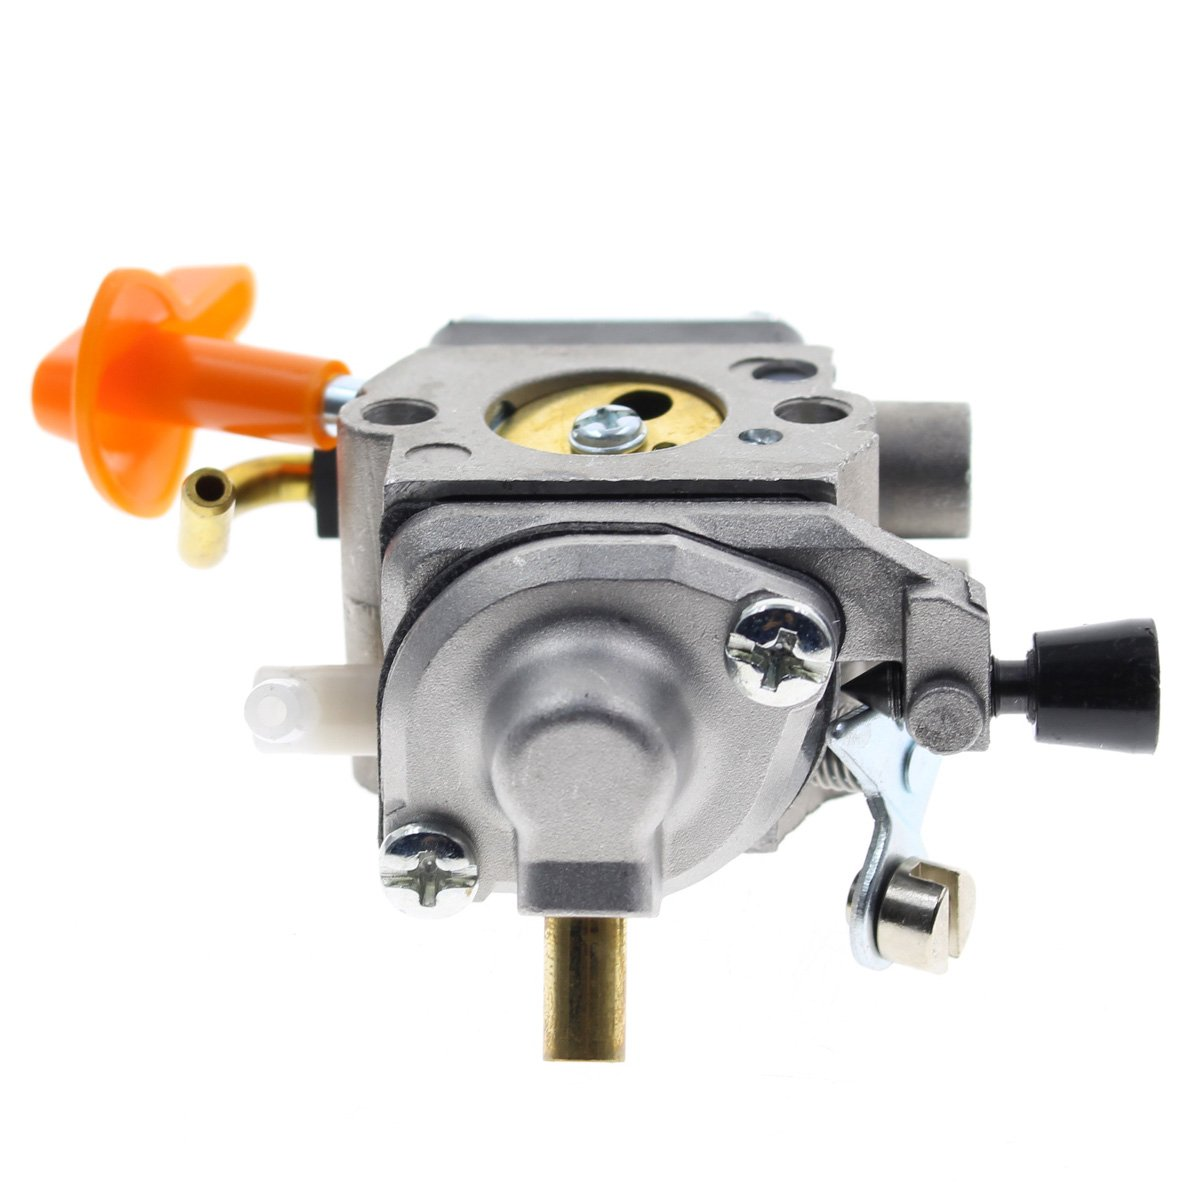 Carbhub Carburetor for Stihl FS100 FS100R FS110 HL90K HL95